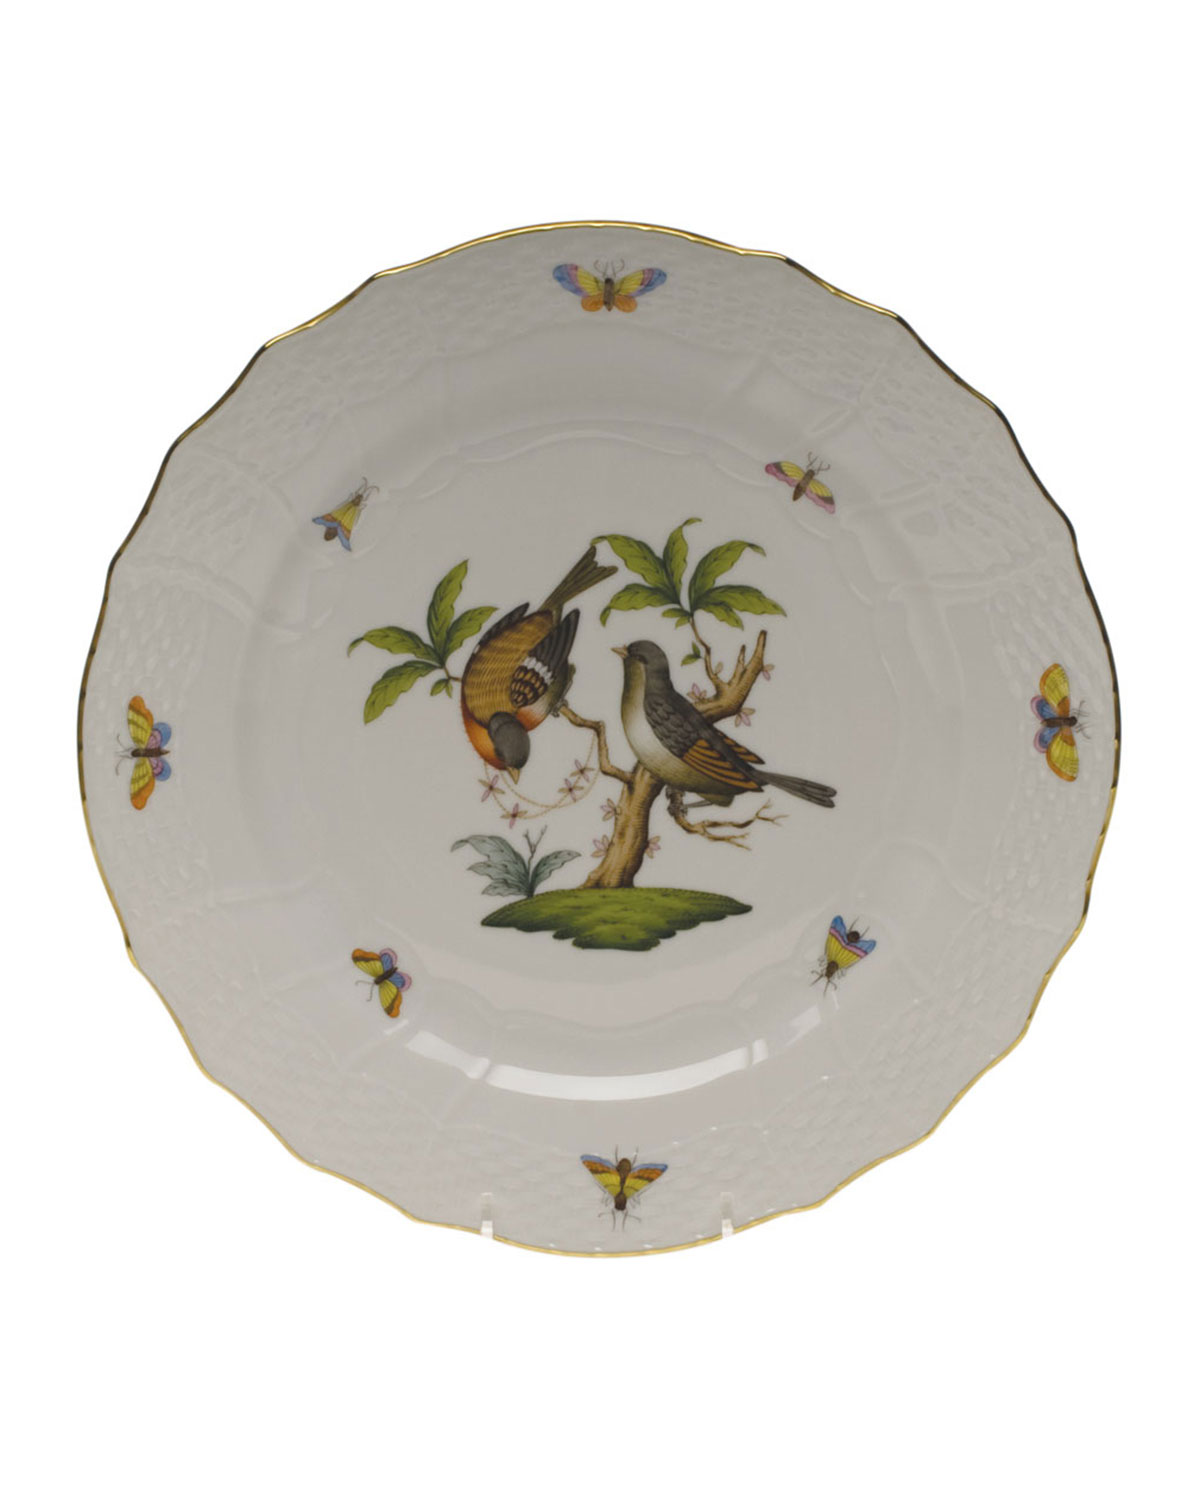 Herend Rothschild Bird Service Plate/Charger 12